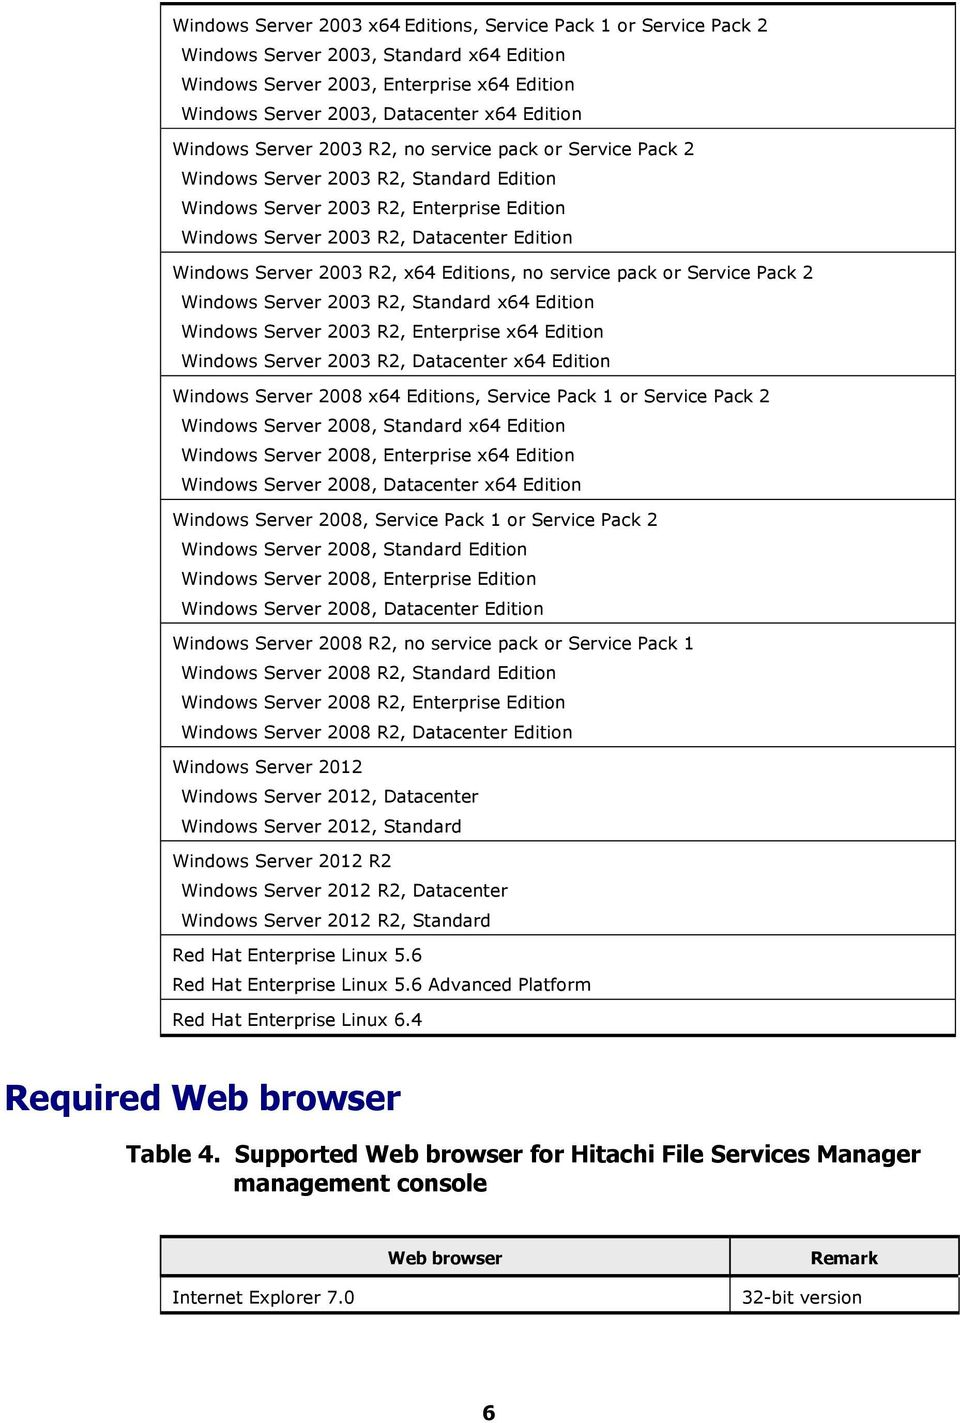 2003 R2, x64 Editions, no service pack or Service Pack 2 Windows Server 2003 R2, Standard x64 Edition Windows Server 2003 R2, Enterprise x64 Edition Windows Server 2003 R2, Datacenter x64 Edition